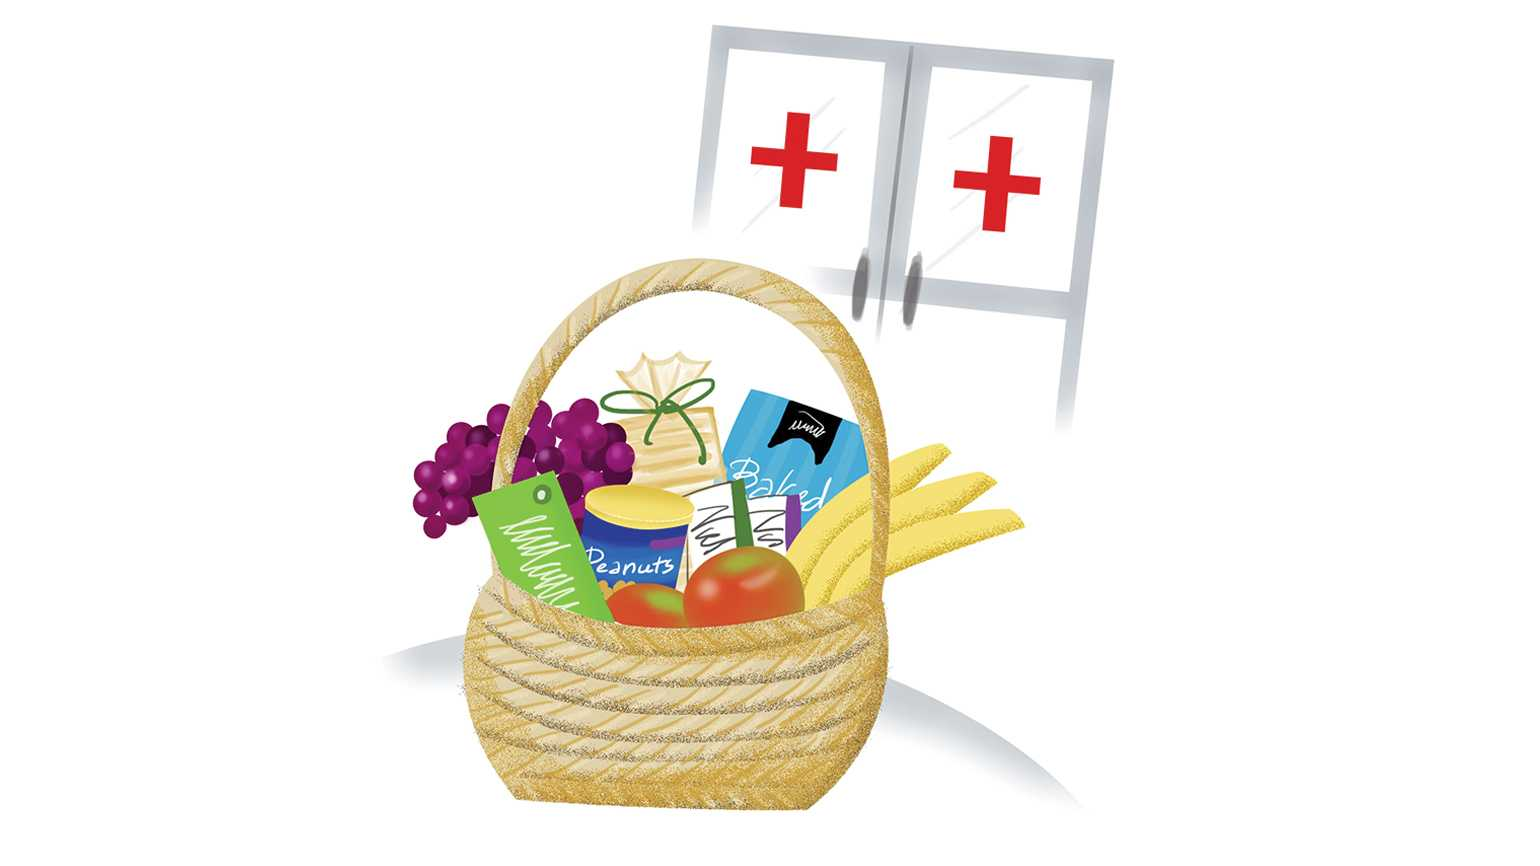 AN artist's rendering of a basket of snacks in a hospital.